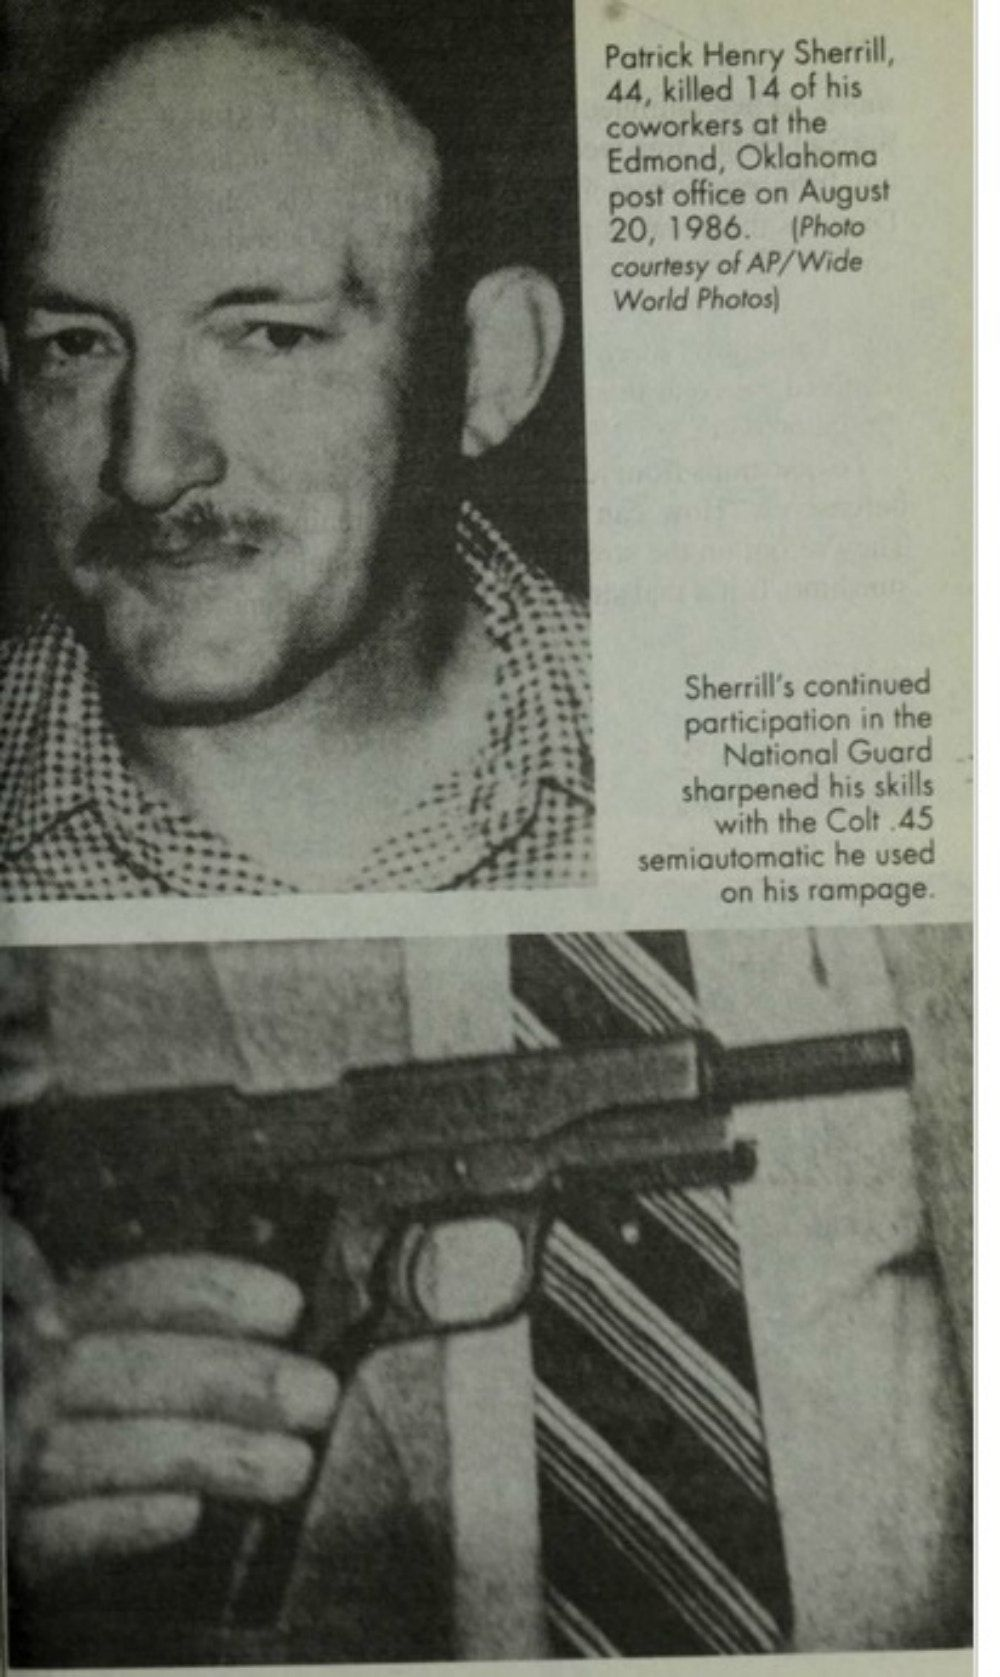 Photo's of mass murderer's weapons - Page 4 357b252bac382d4e9339ff17cfe44ed7